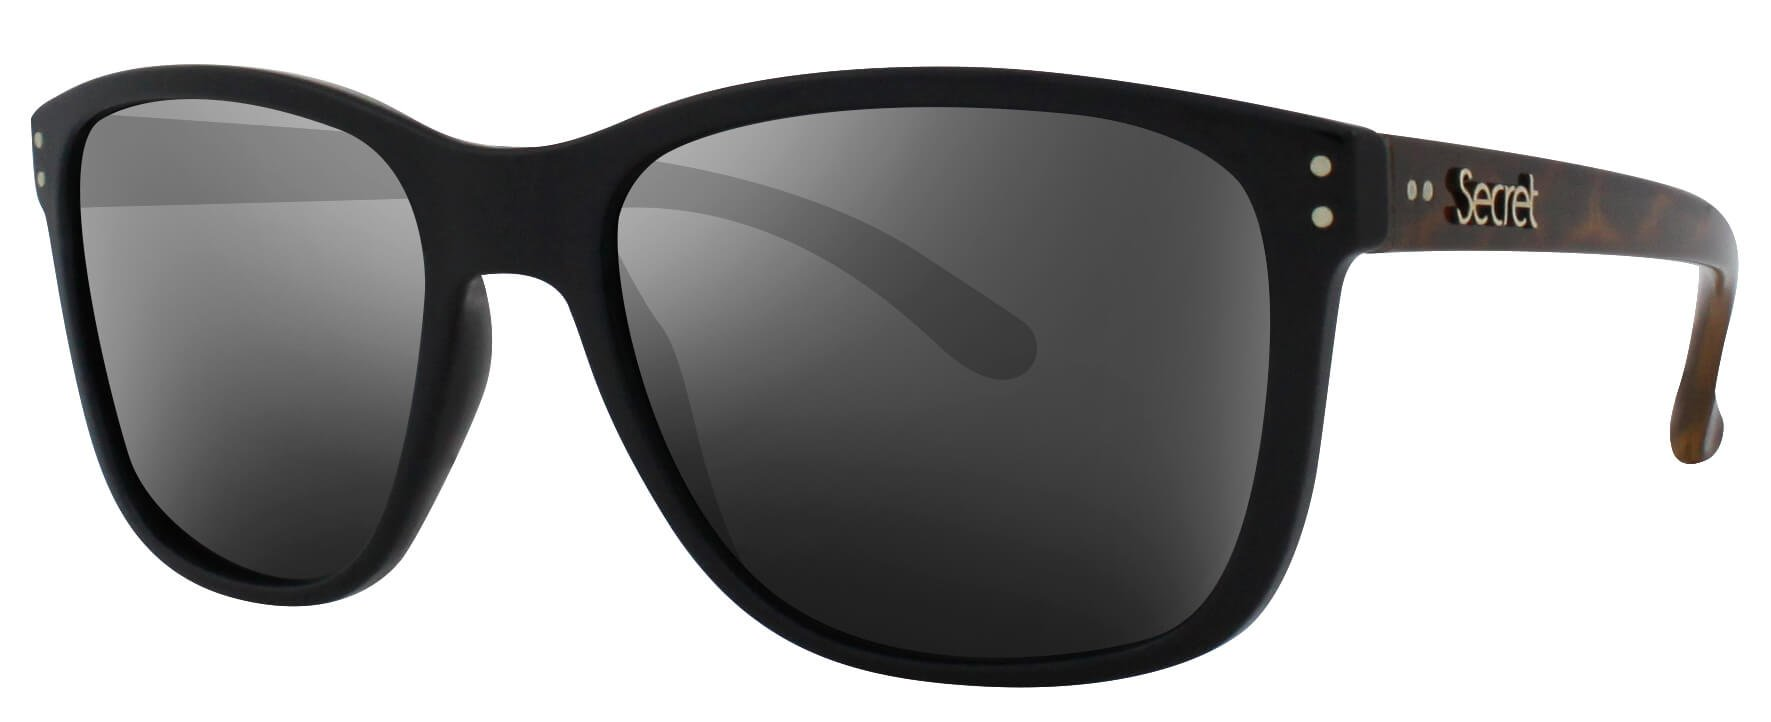 ÓC SECRET ZOE GLOSS BLACK/HAVANA TURTLE / POLARIZED GRADIENT GRAY